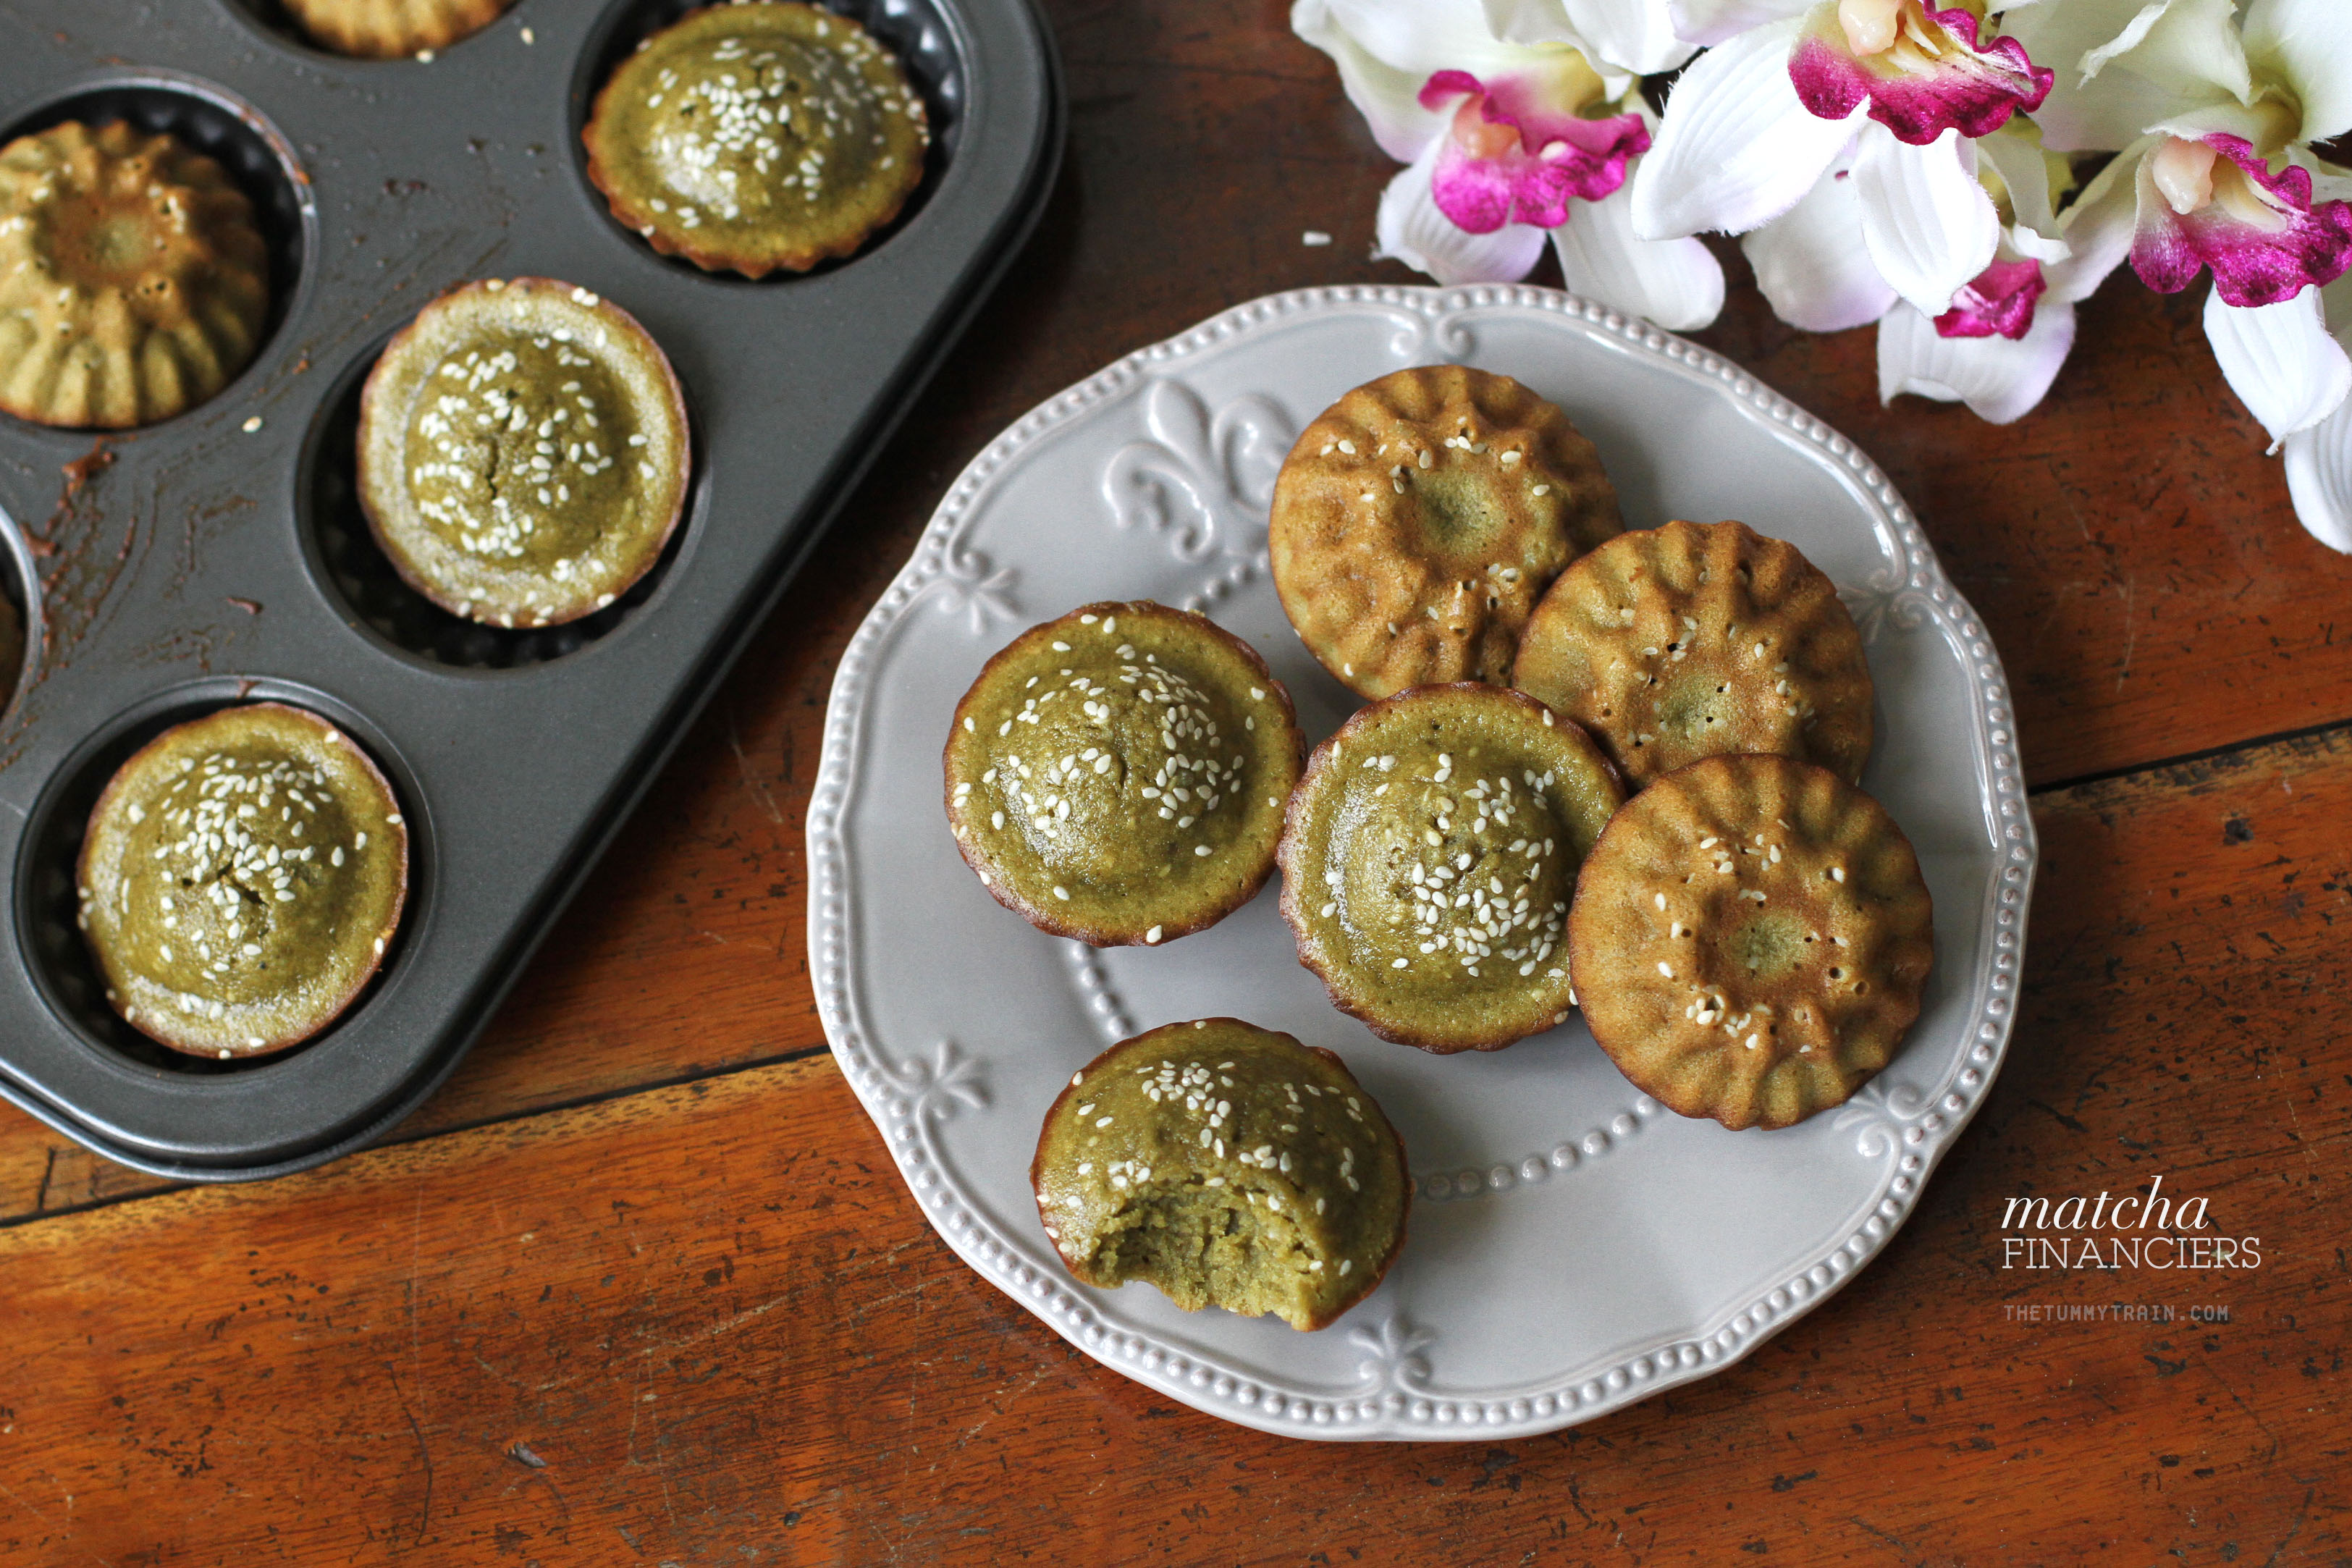 Matcha Financiers 1 - These Matcha Financiers will make teatime even classier